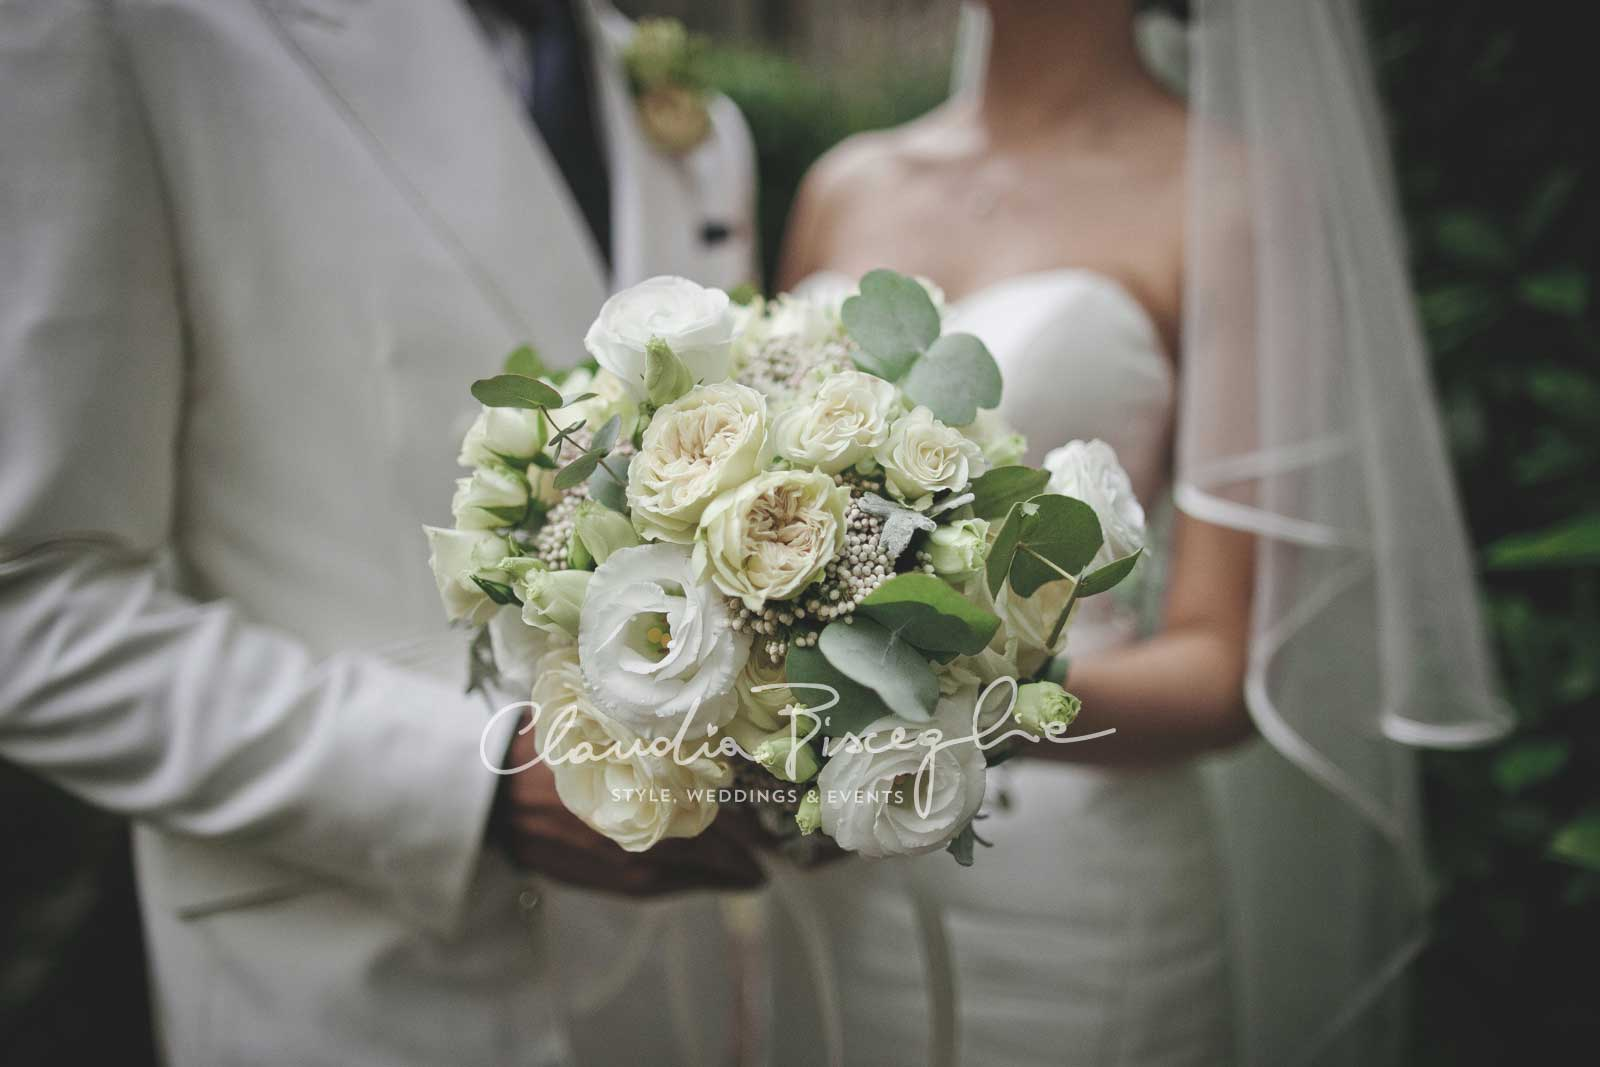 21-Bouquet-roses-white-flowers